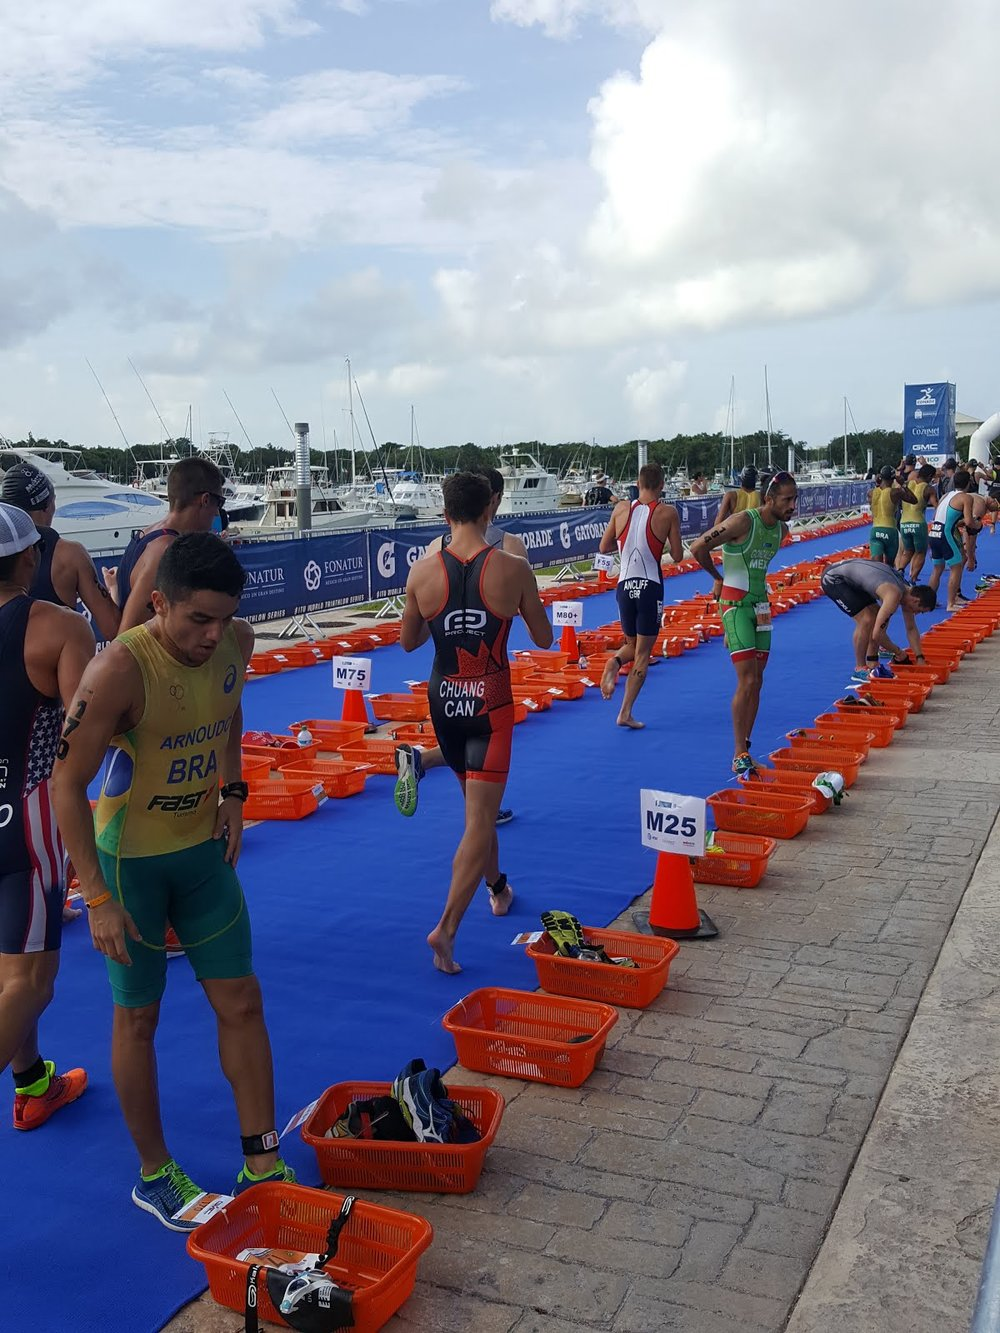 Tyler Chuang Aquathlon Cozumel Mexico ITU Age Group World Championships Swim Run